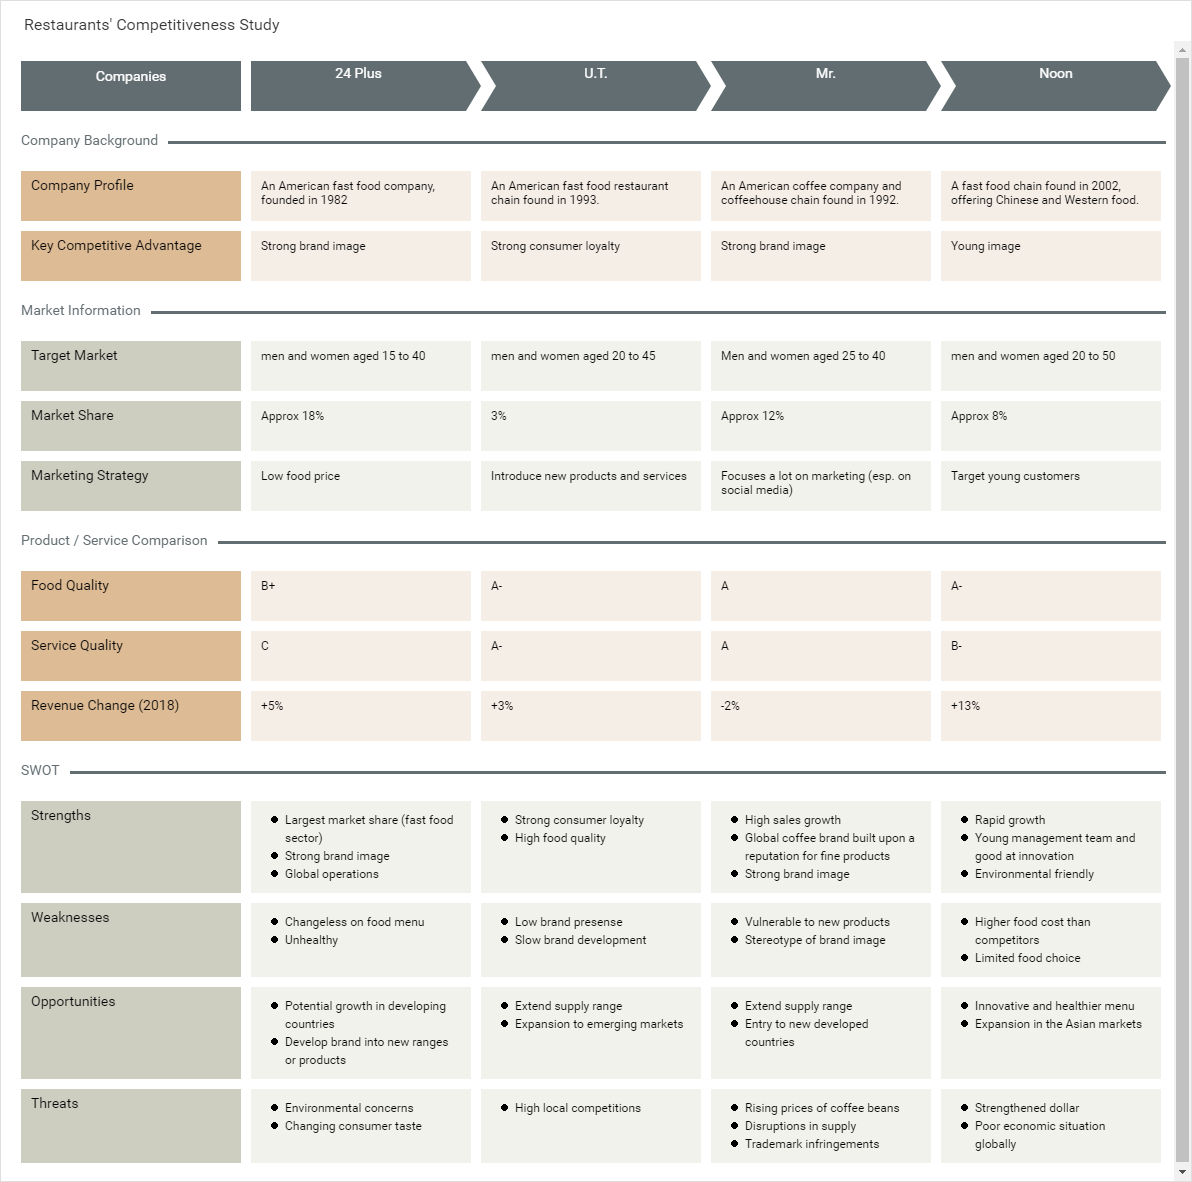 Competitor Analysis template: Restaurants' Competitiveness Study (Created by Diagrams's Competitor Analysis maker)